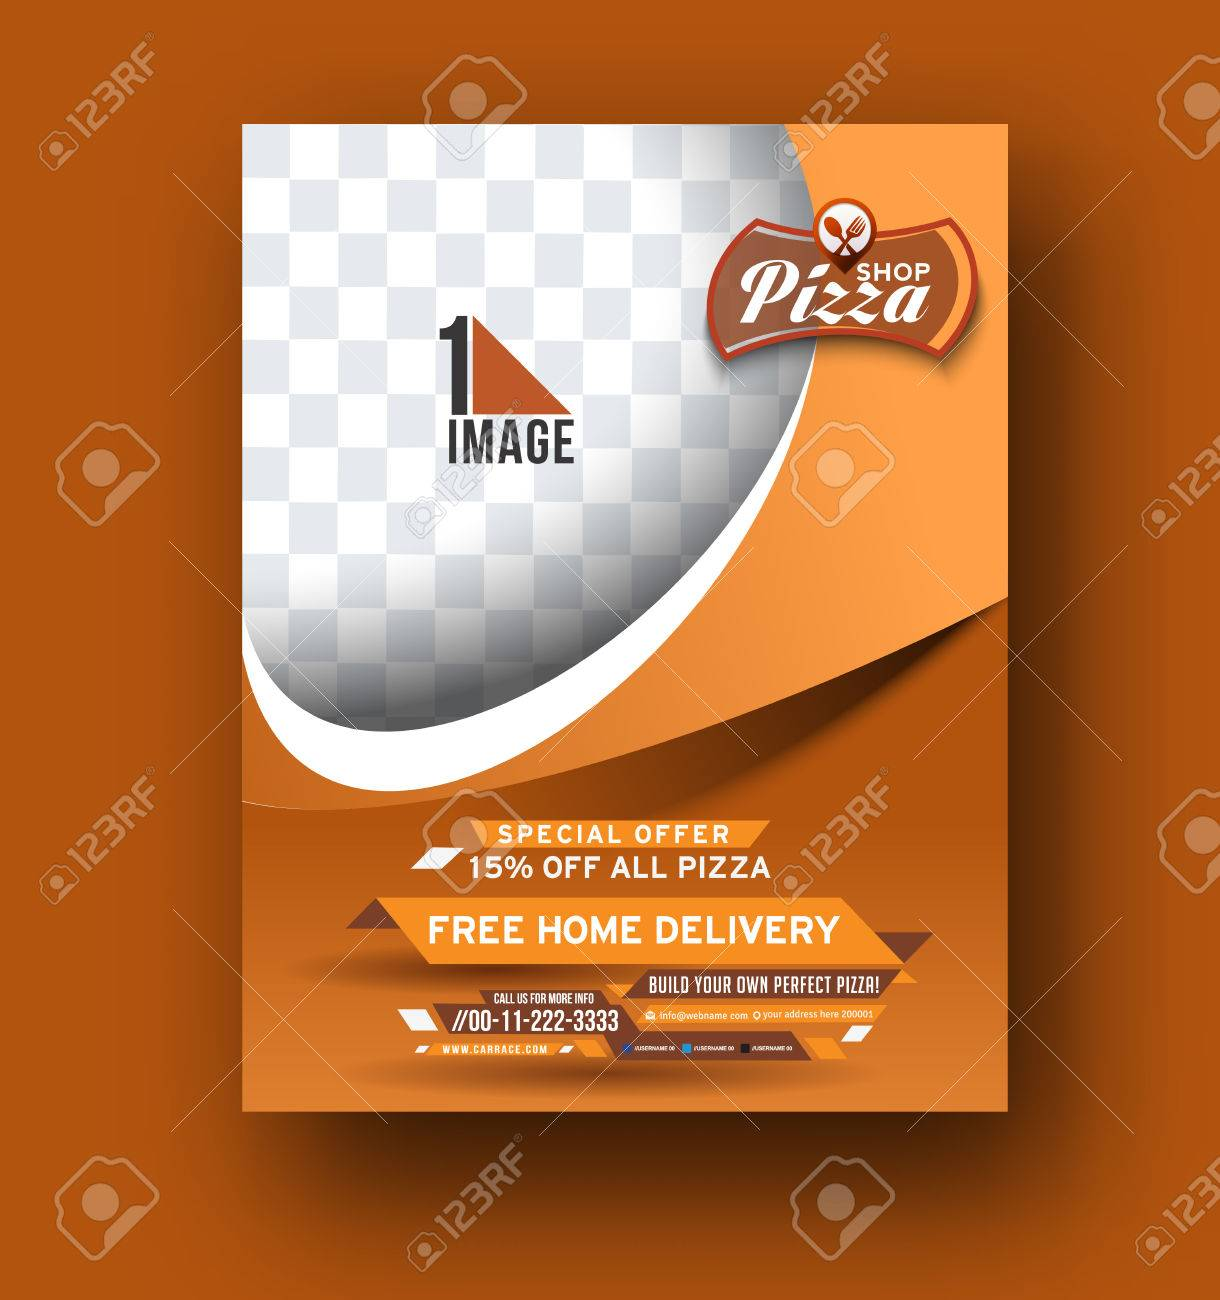 Vector Pizza Shop Flyer, Magazine Cover & Poster Template. Royalty ...